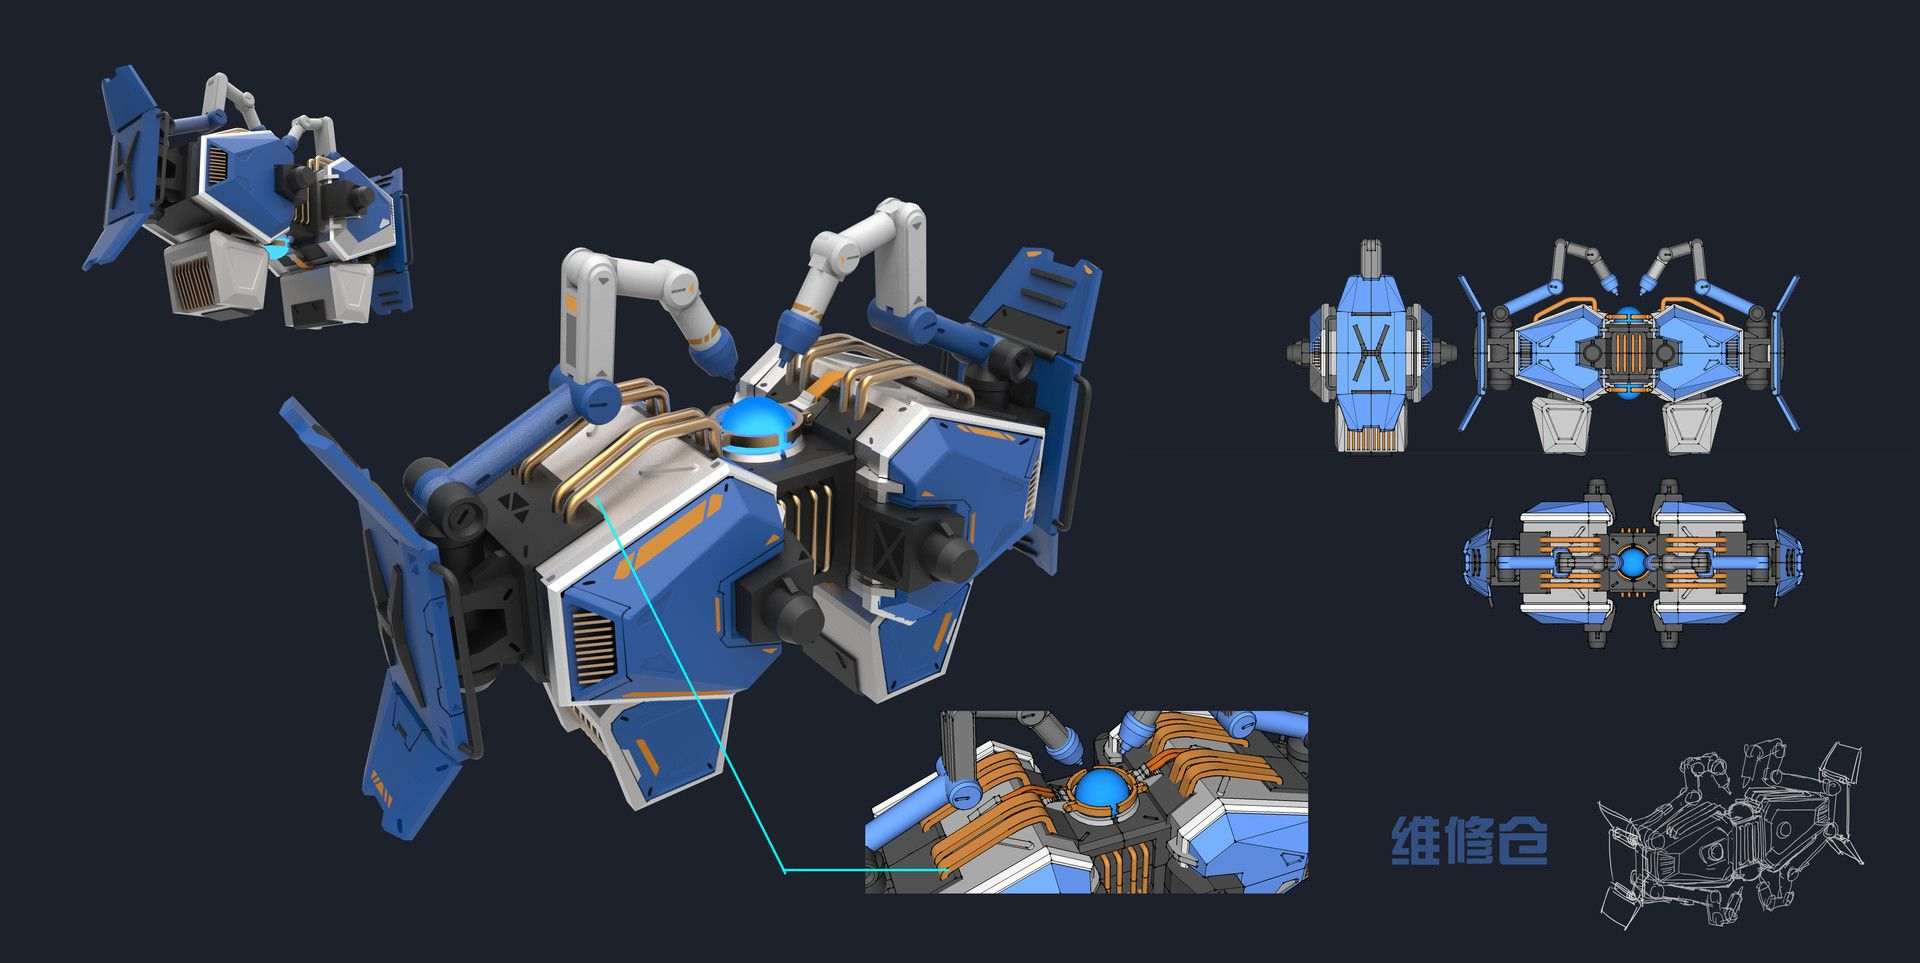 Artstation concept design for mobile game galaxy rebels xu wang